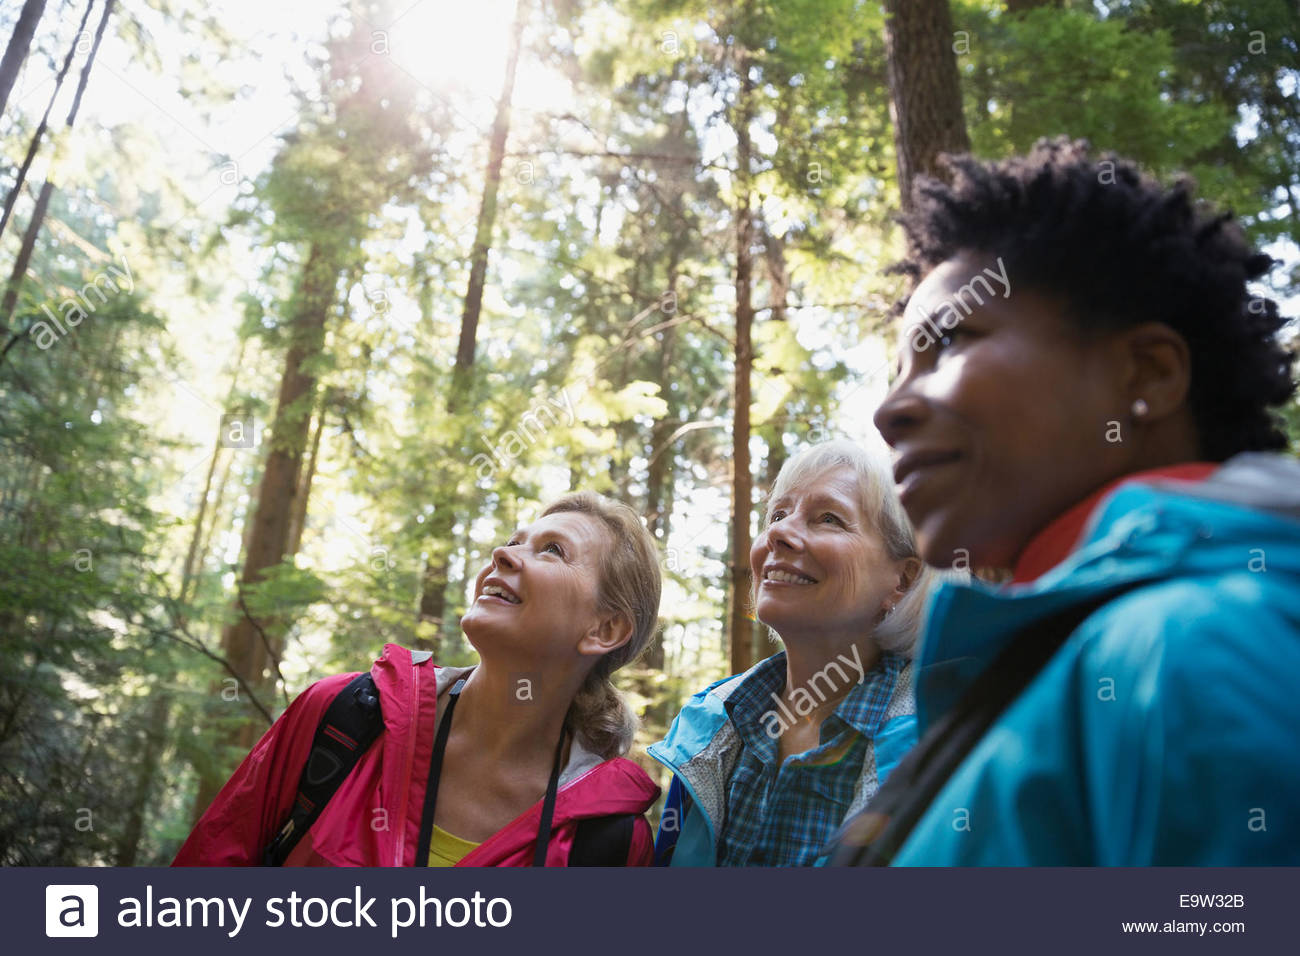 Curious women looking up in trees in woods - Stock Image